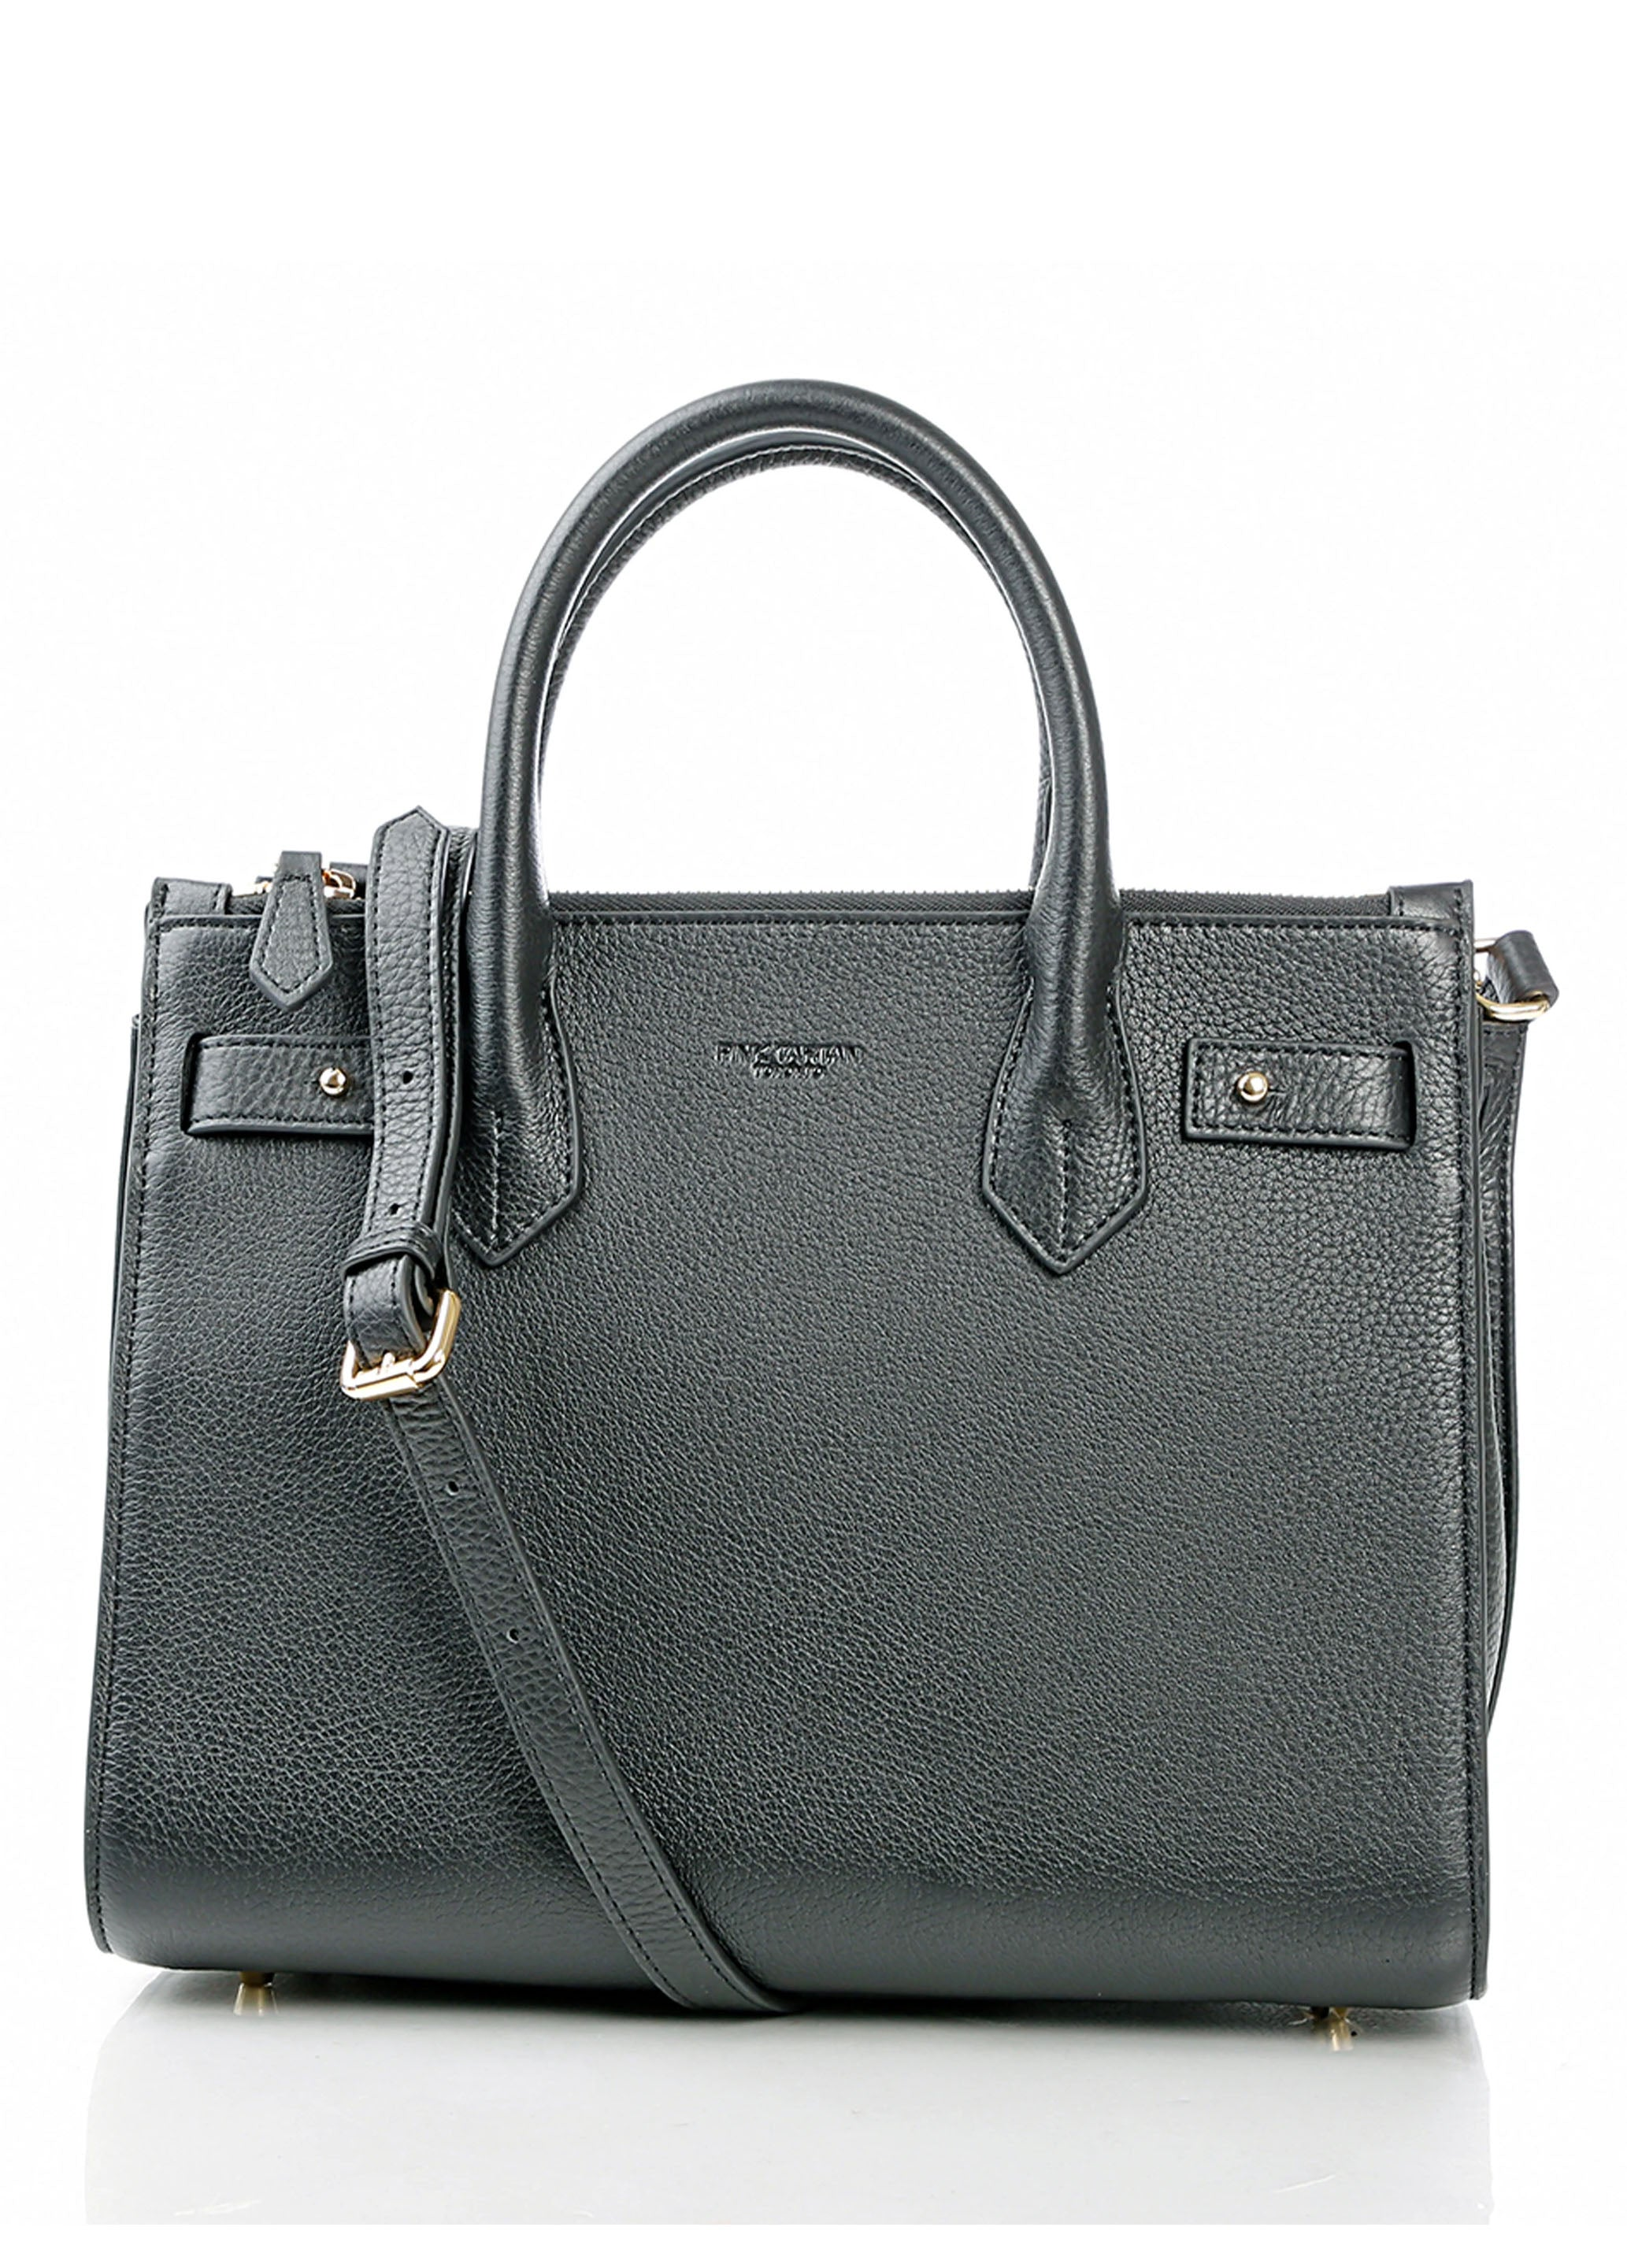 Chase Bag - Black